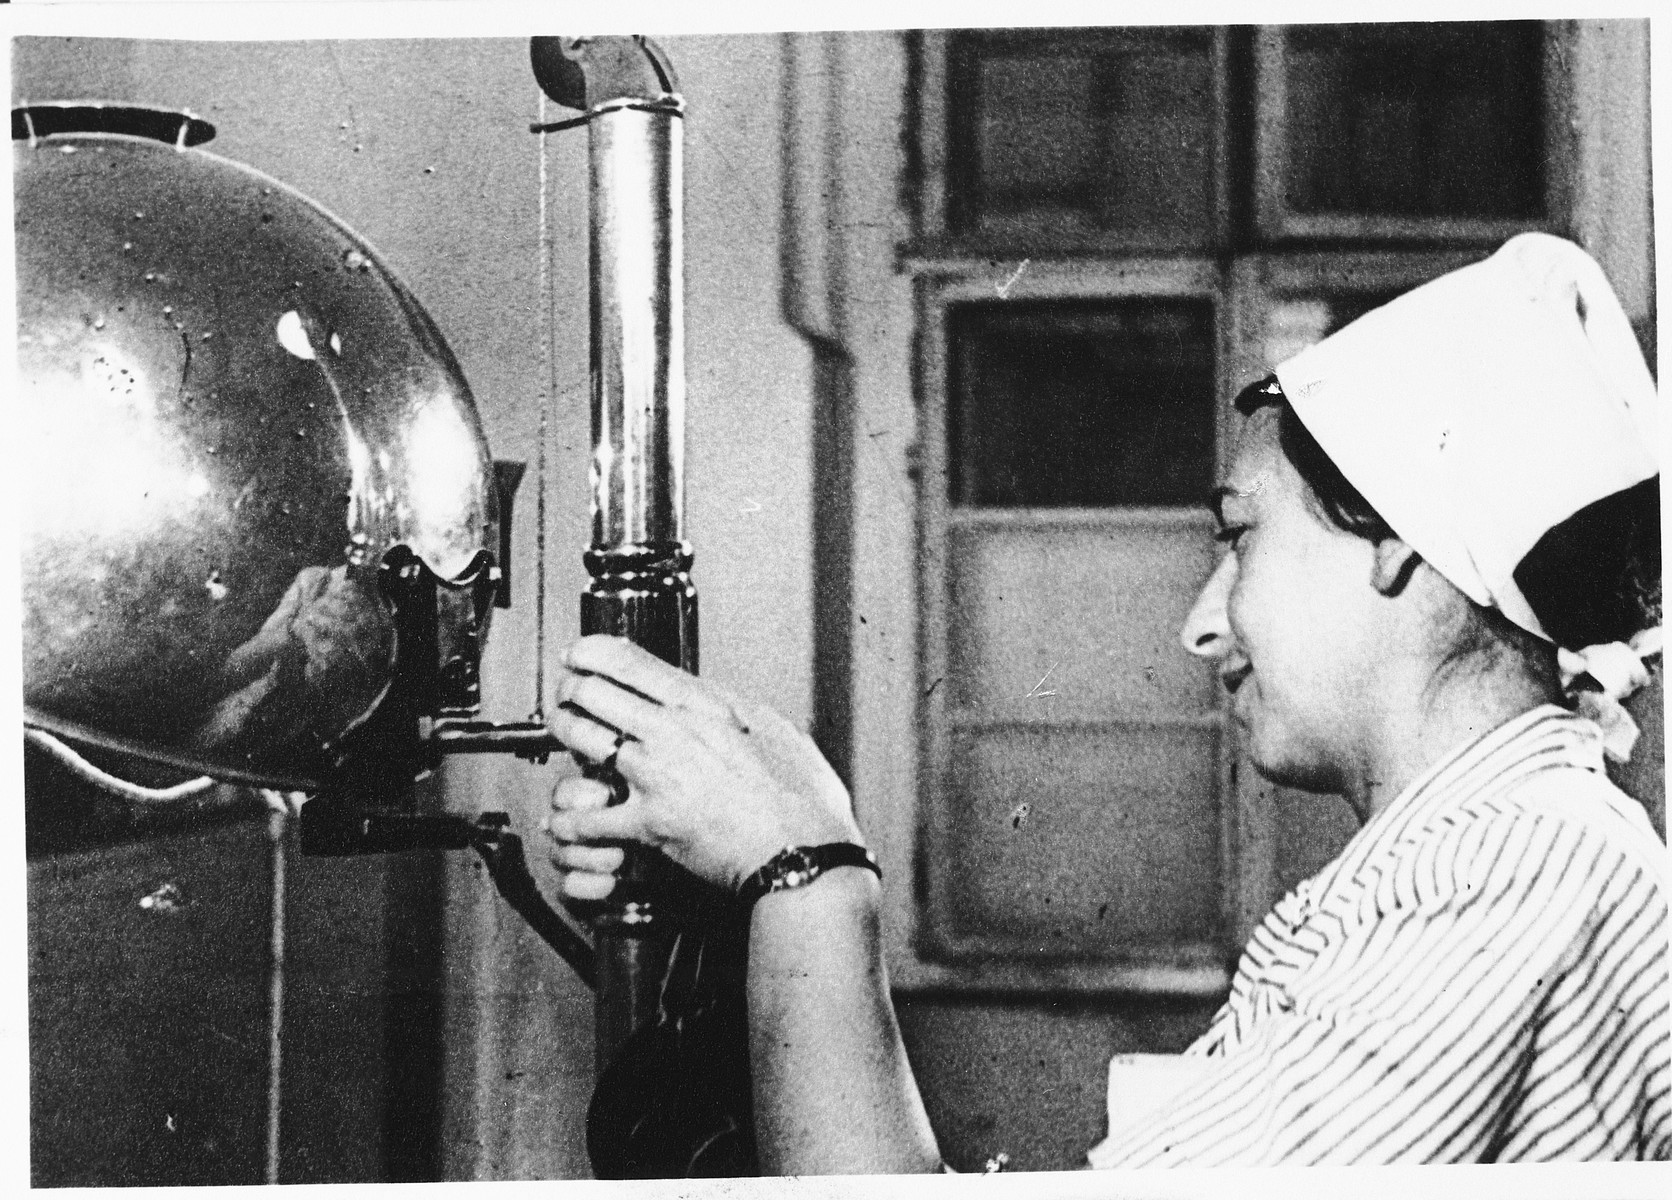 A Jewish female prisoner works as a nurse in a clinic in the Hamburger caserne in Theresienstadt.  The photograph was taken in connection with the Red Cross visit to Theresienstadt.  Pictured is Augusta Reiterova, the aunt of Helena Hallerova Bisicka.  Augusta perished shortly after this photograph was taken.